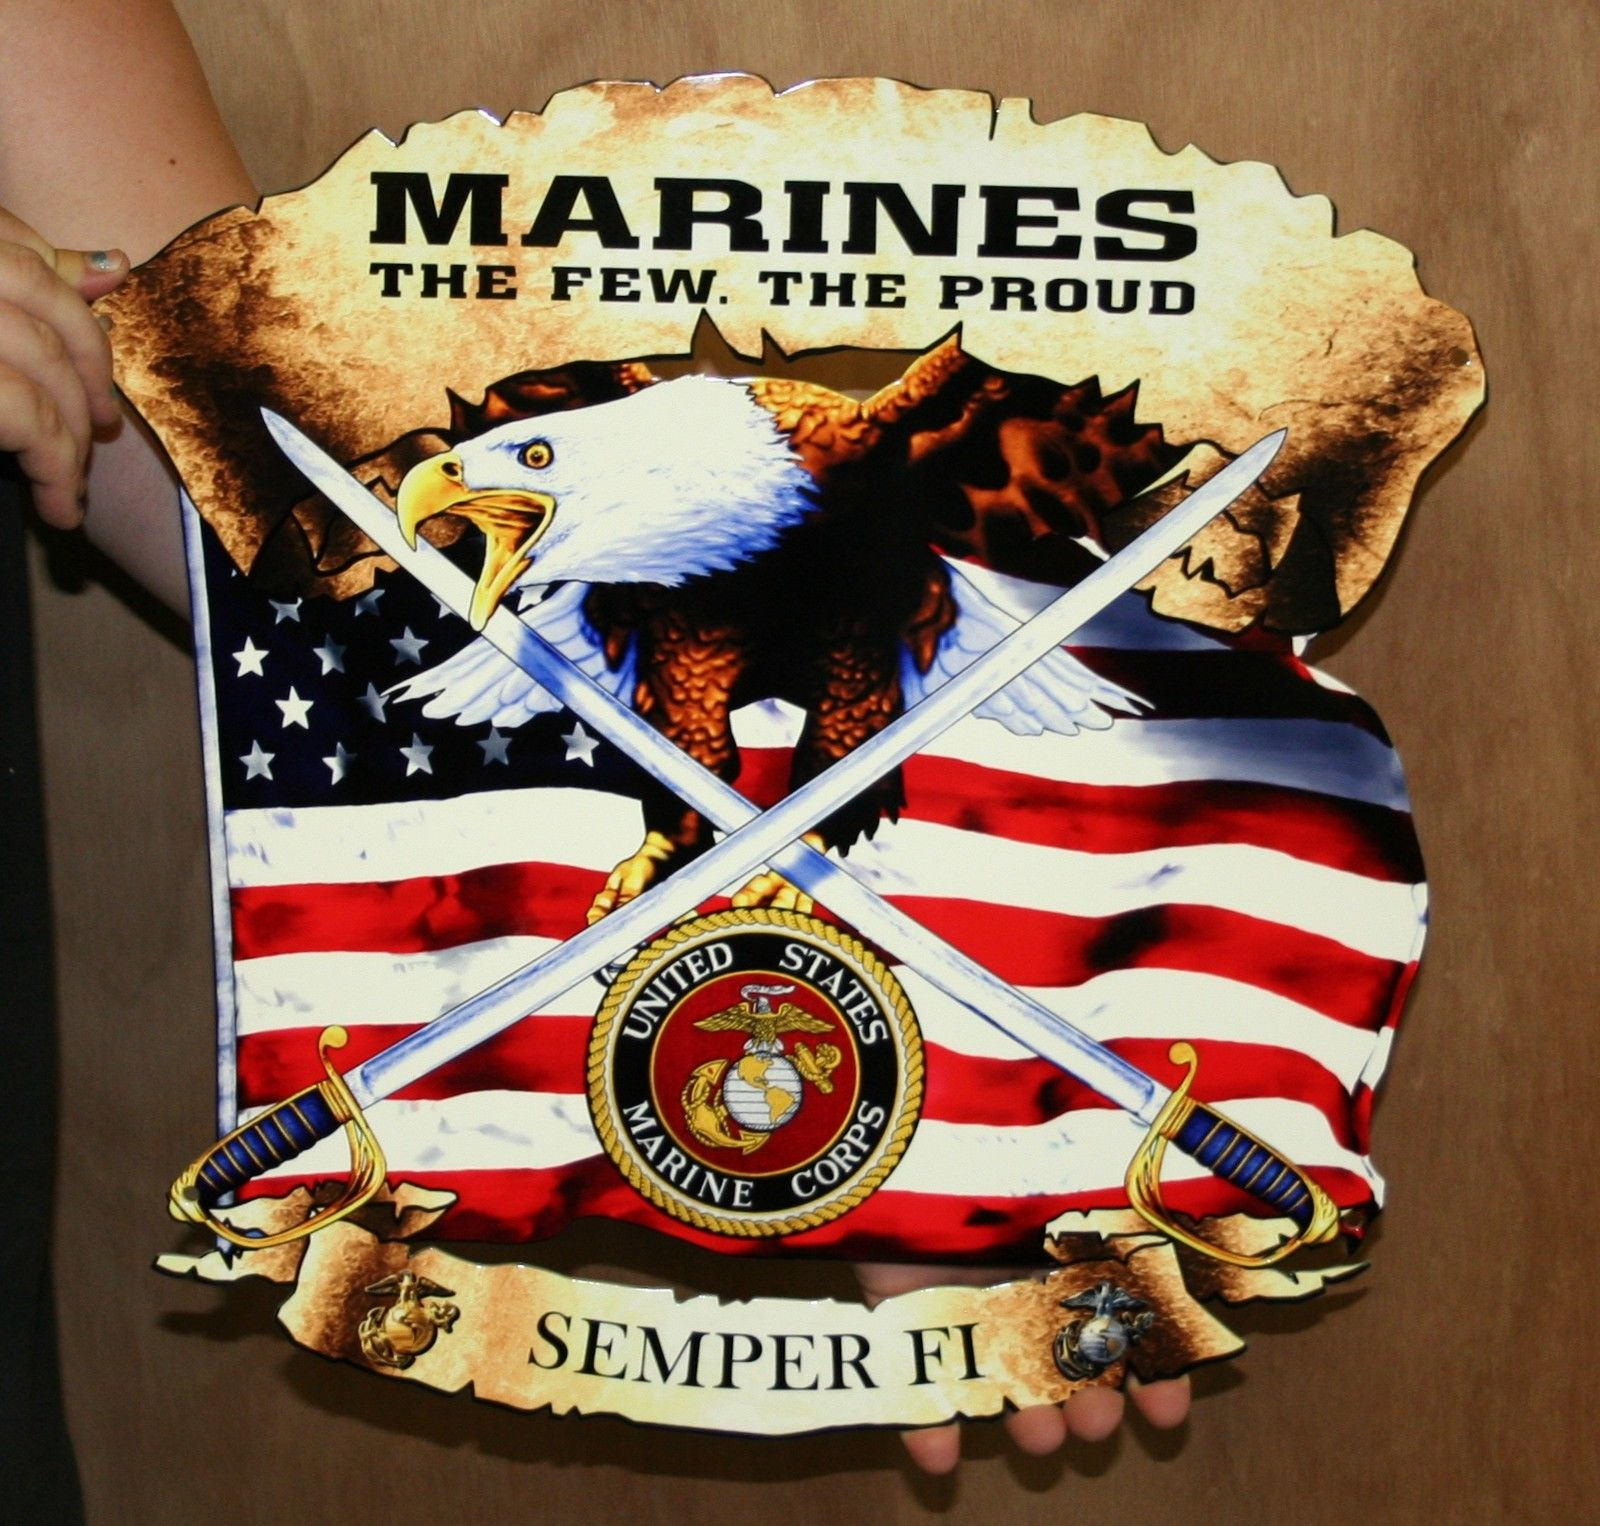 Usmc Logo Wallpaper: USMC FLAG MANCAVE METAL SIGN WITH LOGOS SEMPER FI